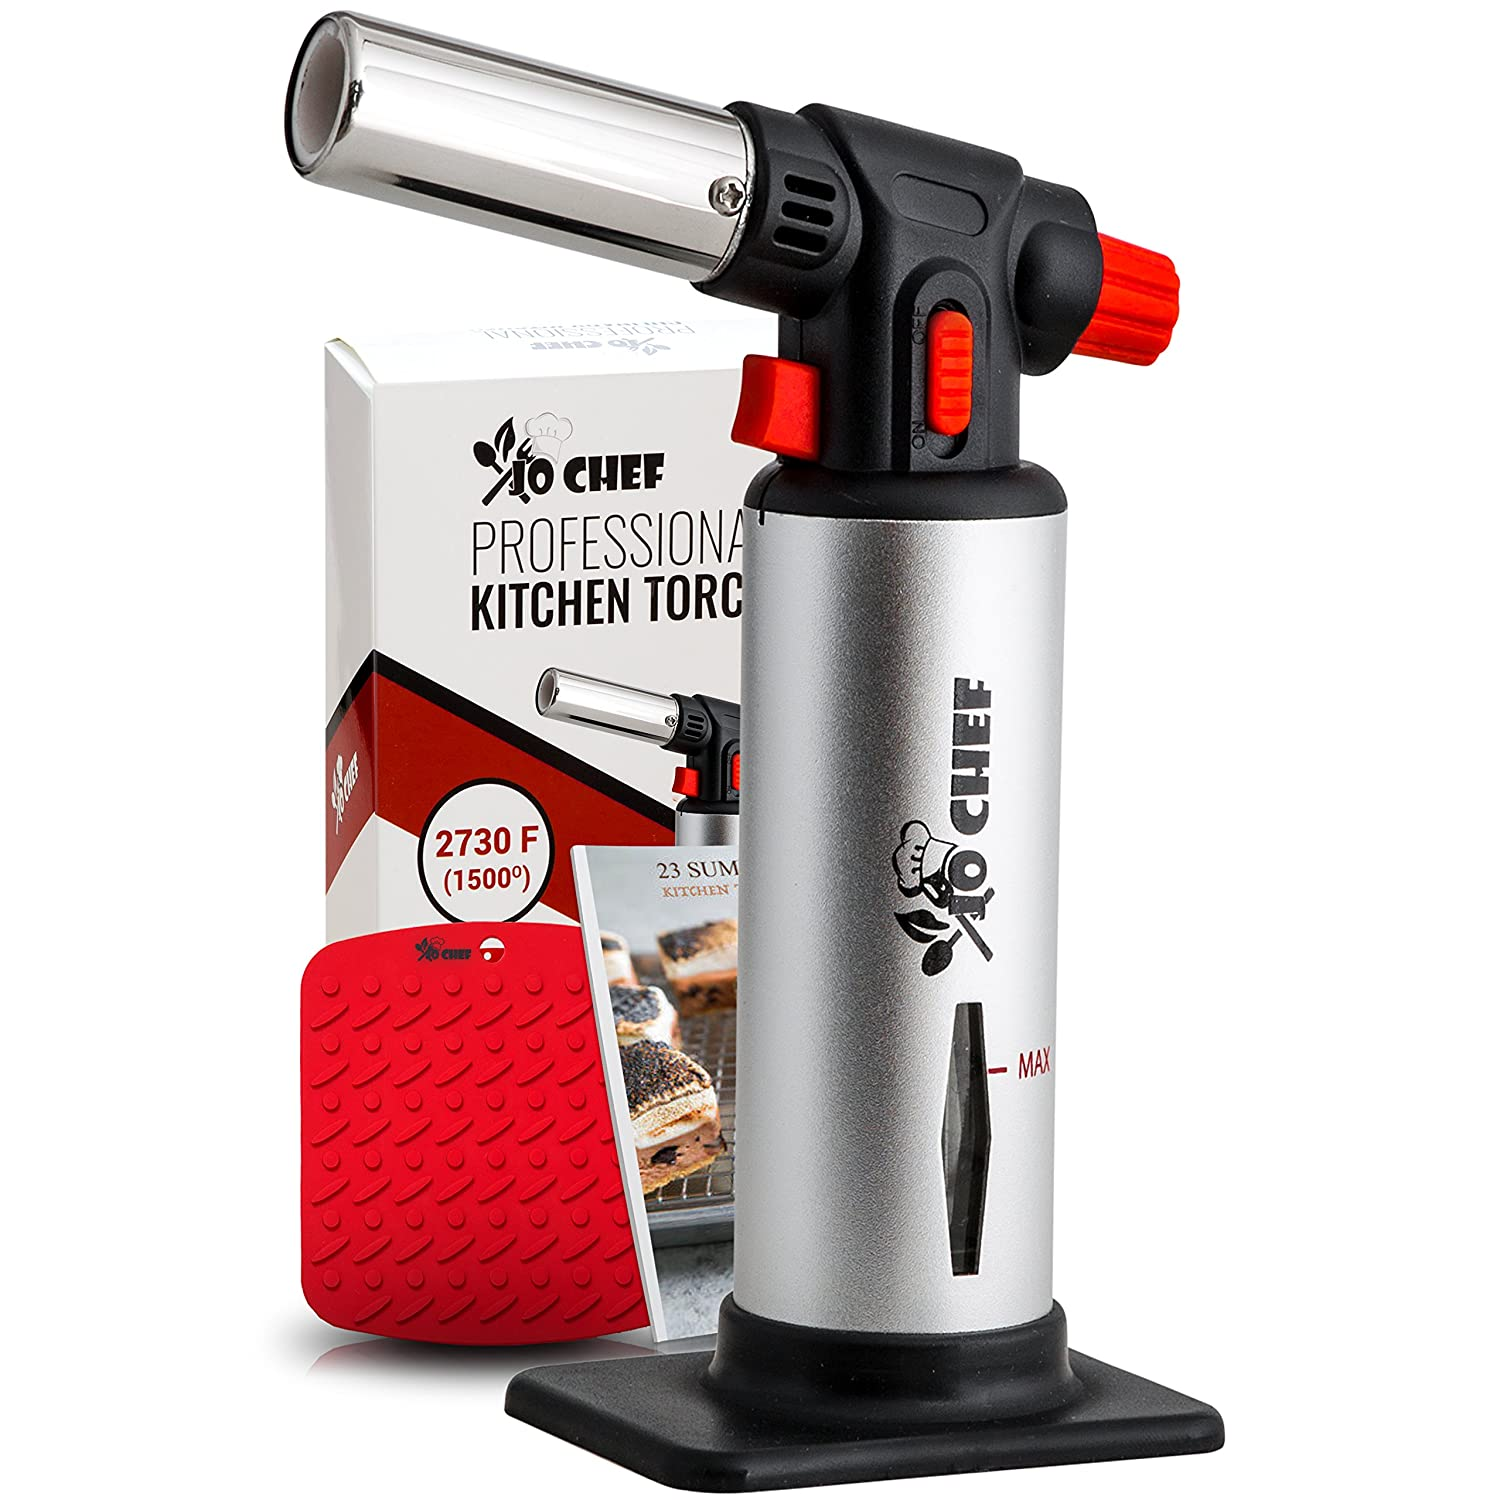 Jo Chef Professional Kitchen Torch – Aluminum Refillable Crème Brulee Blow Torch – Safety Lock & Adjustable Flame + Fuel gauge – for Cooking, Baking, BBQ – FREE Heat Resistant Place Mat + Recipe eBook .